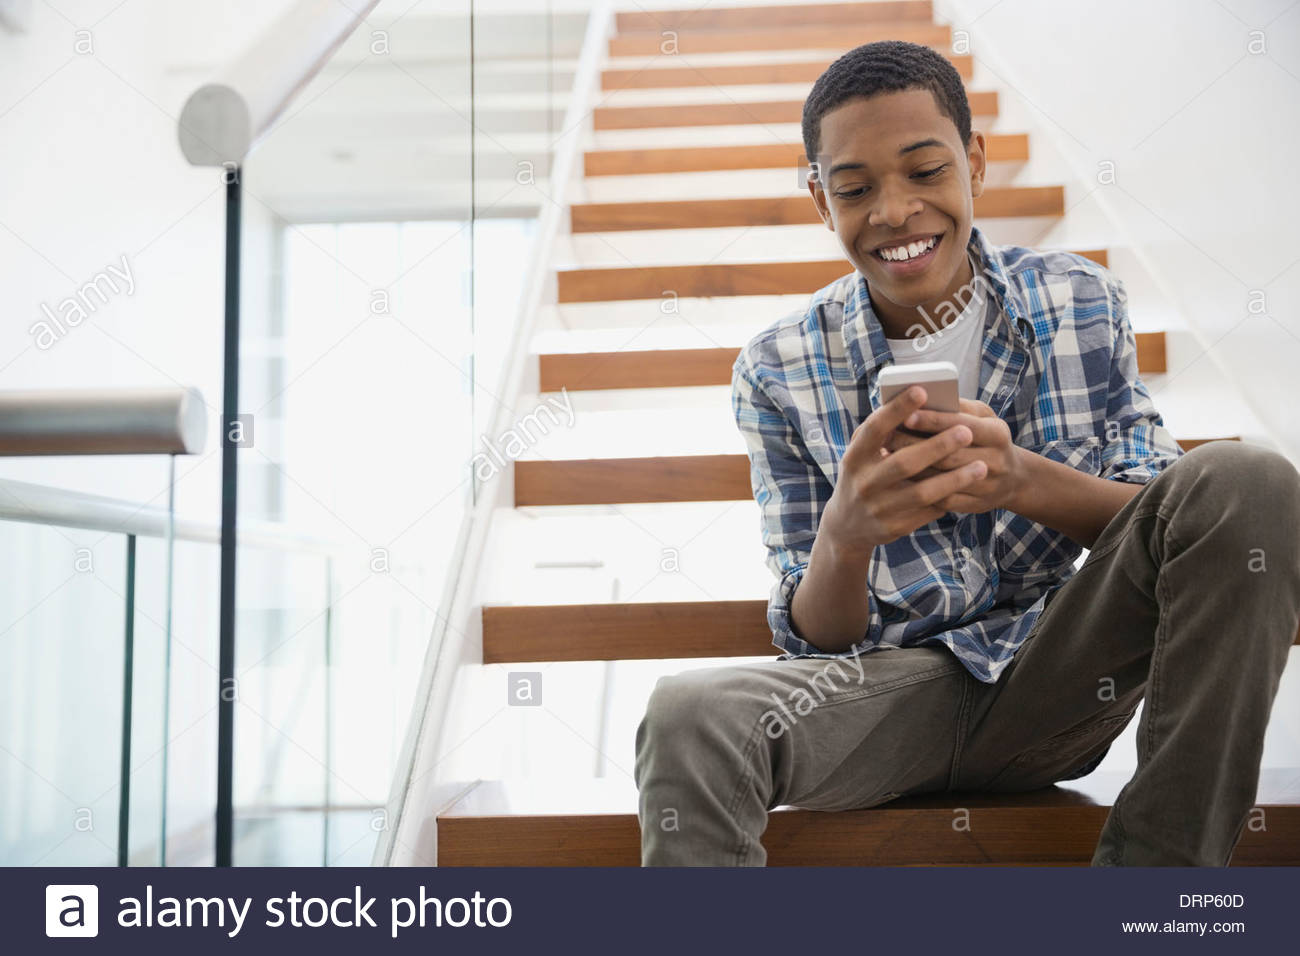 Teen using smart phone on steps at home - Stock Image